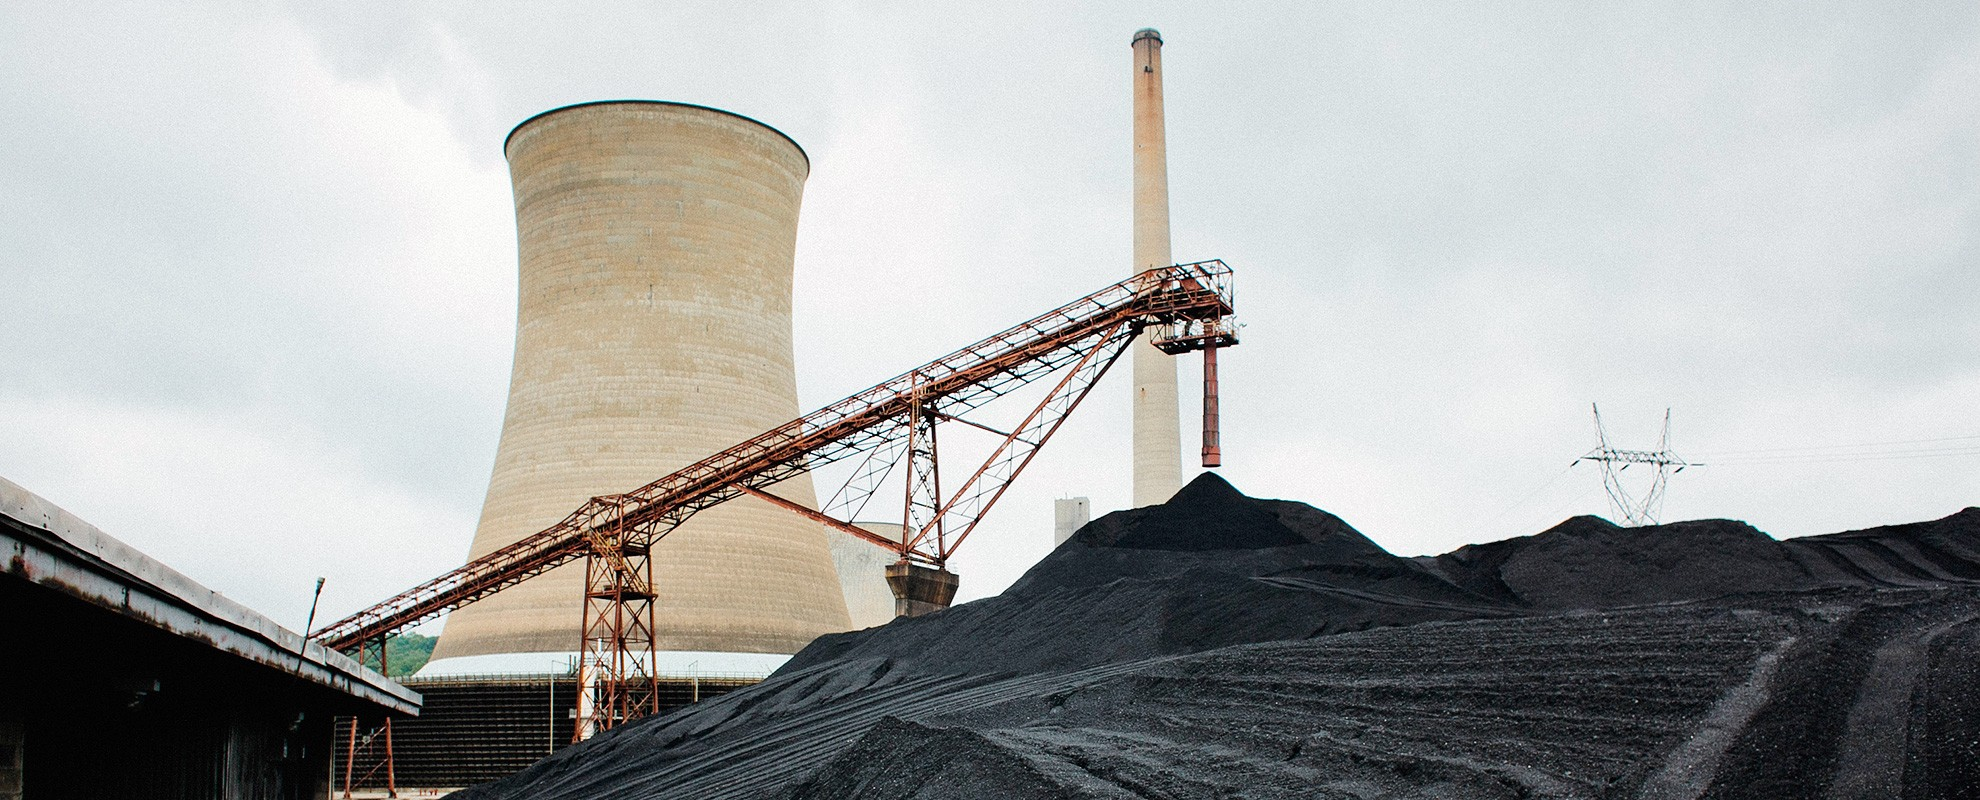 The Big Sandy coal-fired power plant burns through 90 railroad cars of coal daily. The Kentucky Power Company had proposed a near billion dollar upgrade—but the price tag would have been passed along to Kentucky ratepayers.